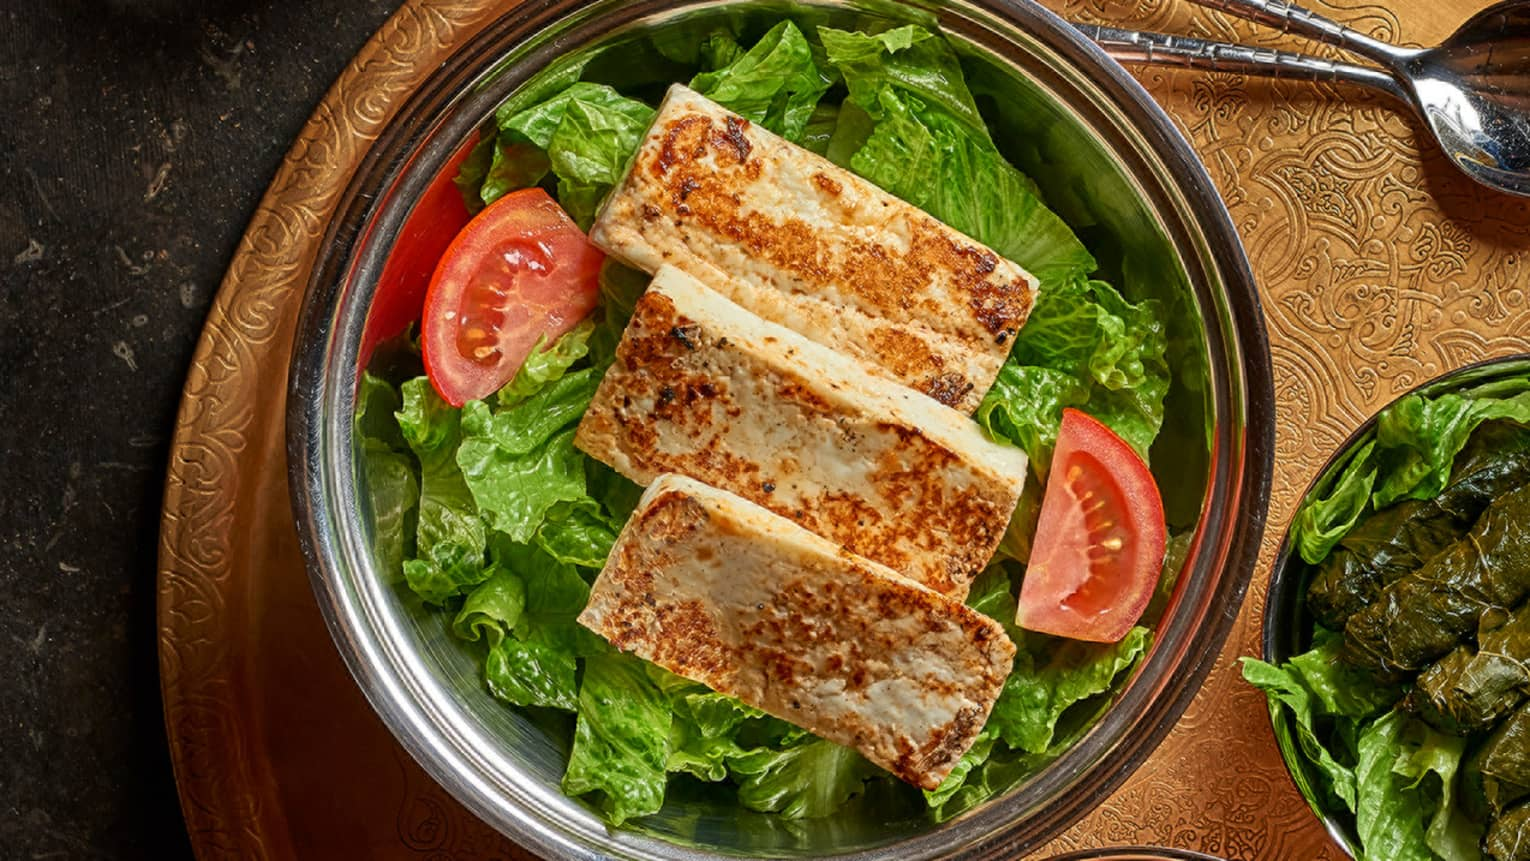 Three strips of fried Halloumi cheese on bed of lettuce in bowl, tomato wedge